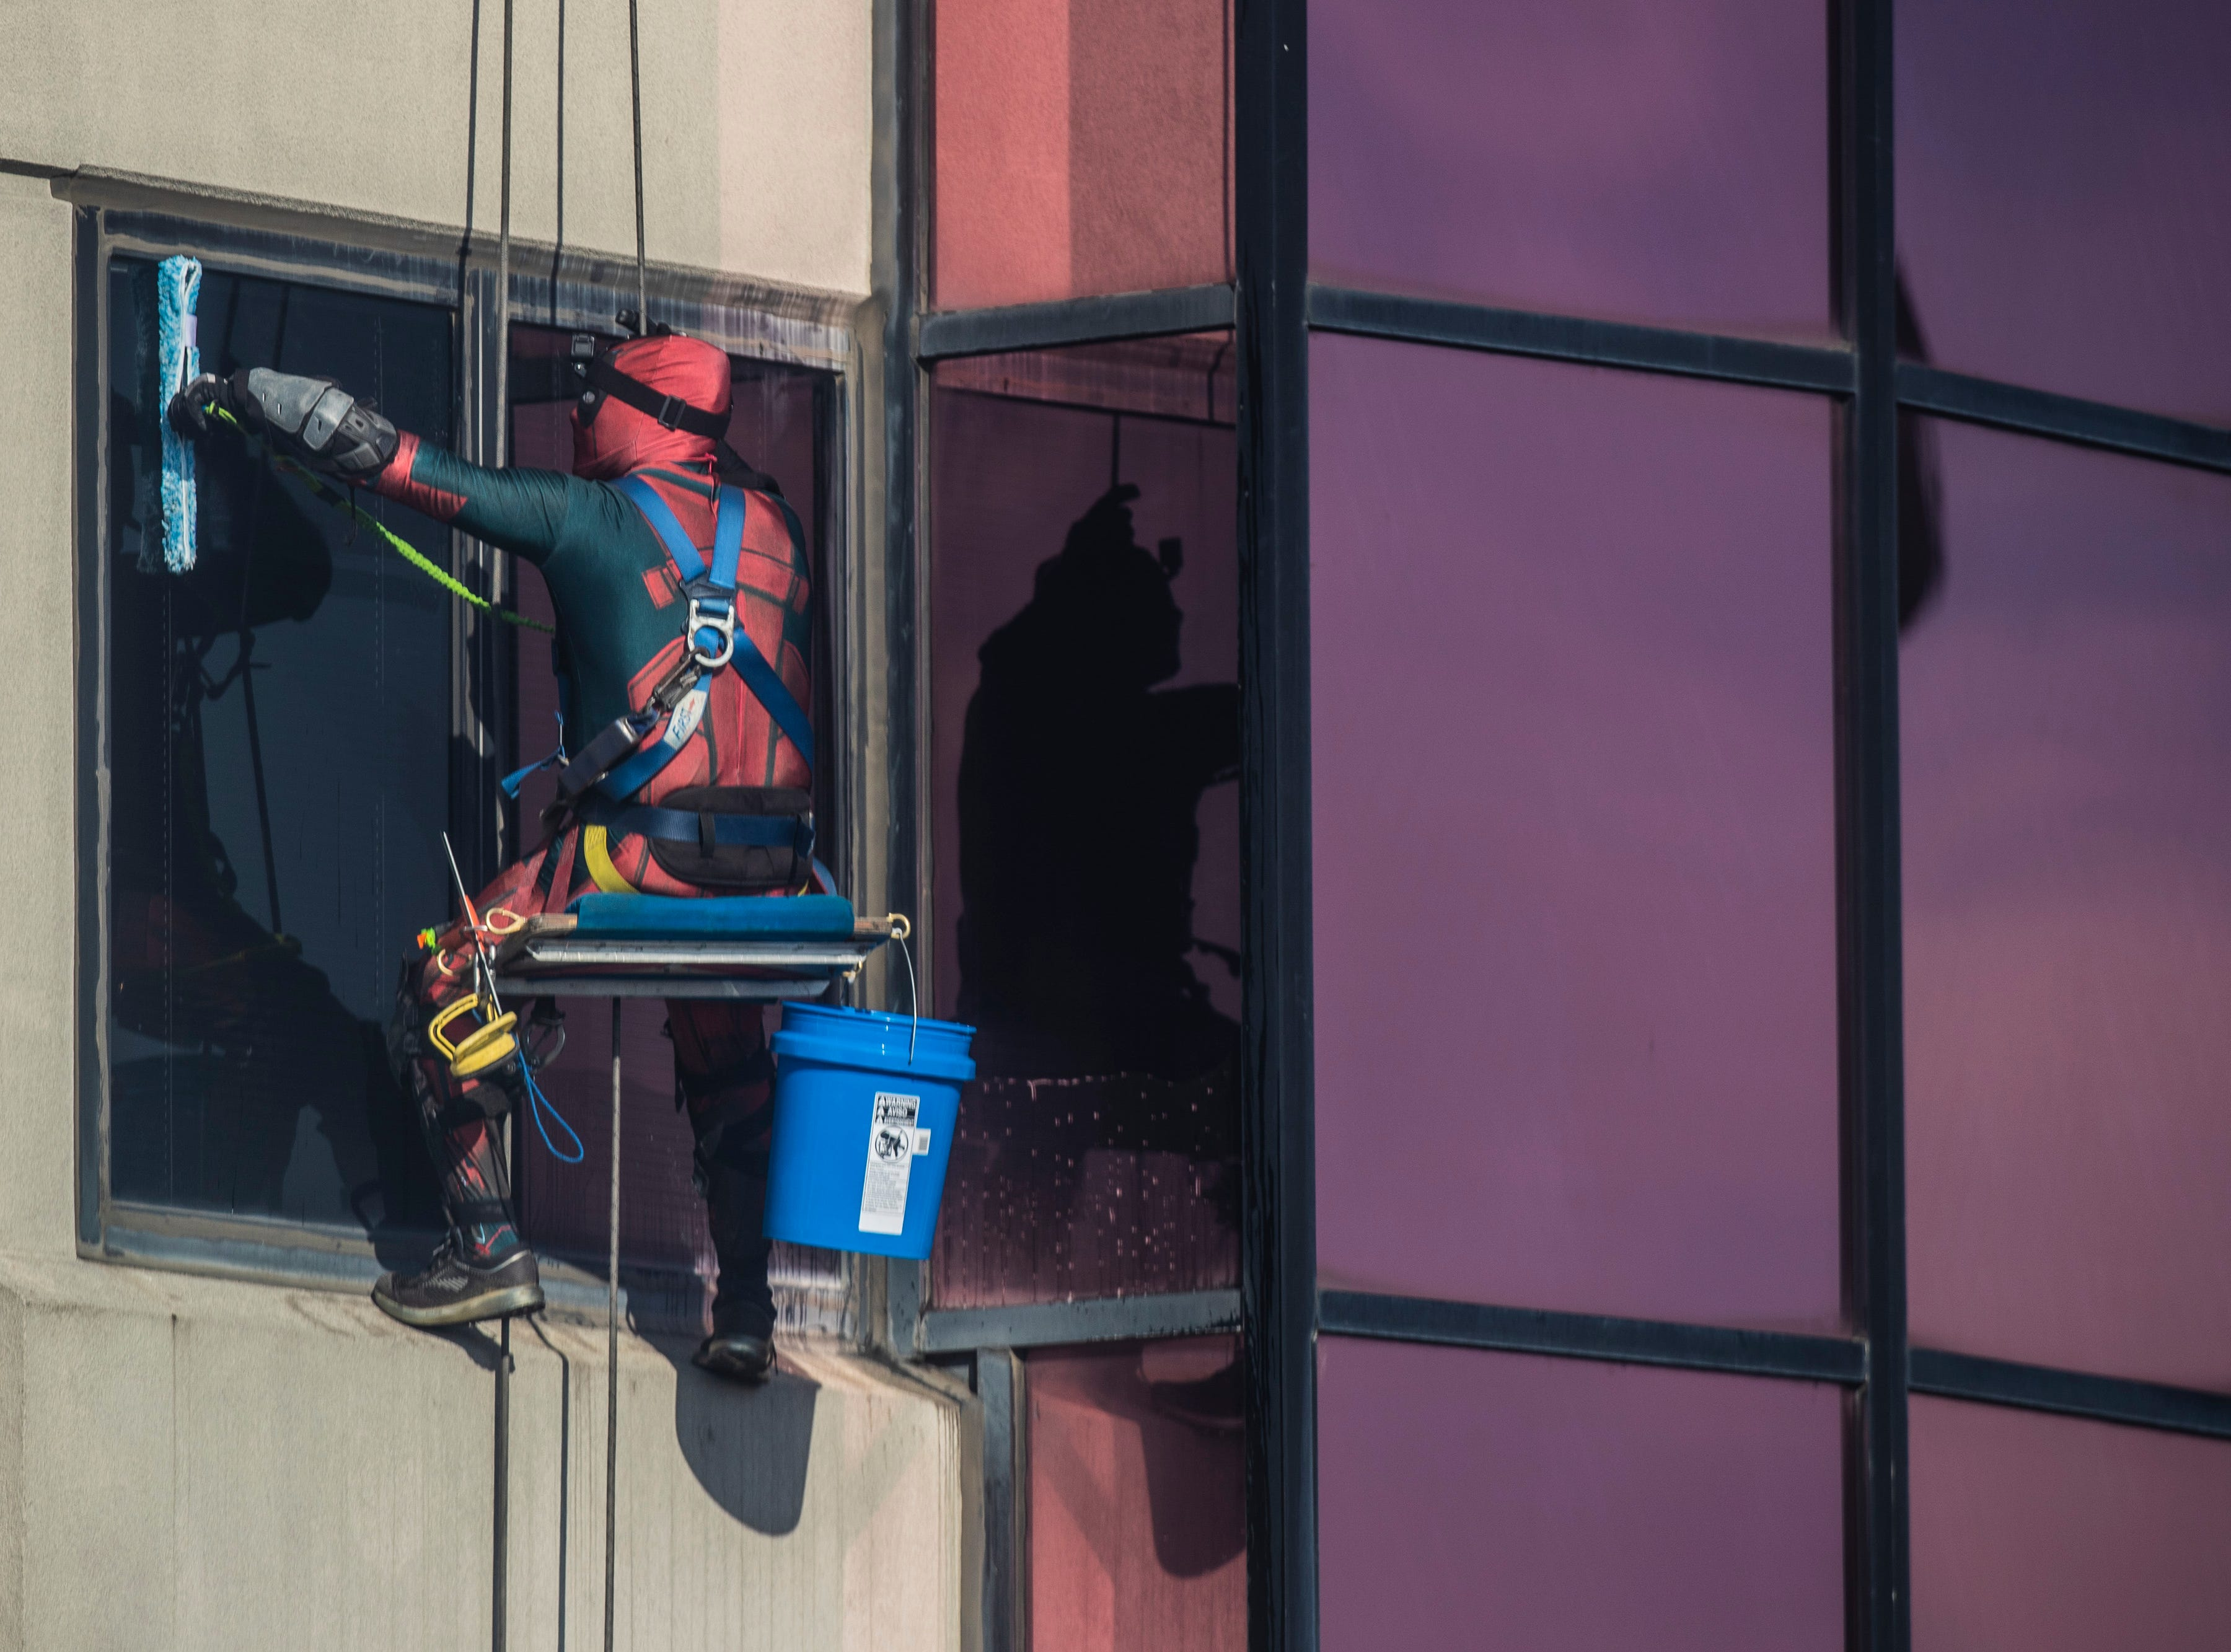 Johnny Haist with Pro Clean International is dressed as Deadpool as the window crew wore super hero costumes while cleaning the windows at Norton Children's Hospital on Thursday. Feb. 21, 2019